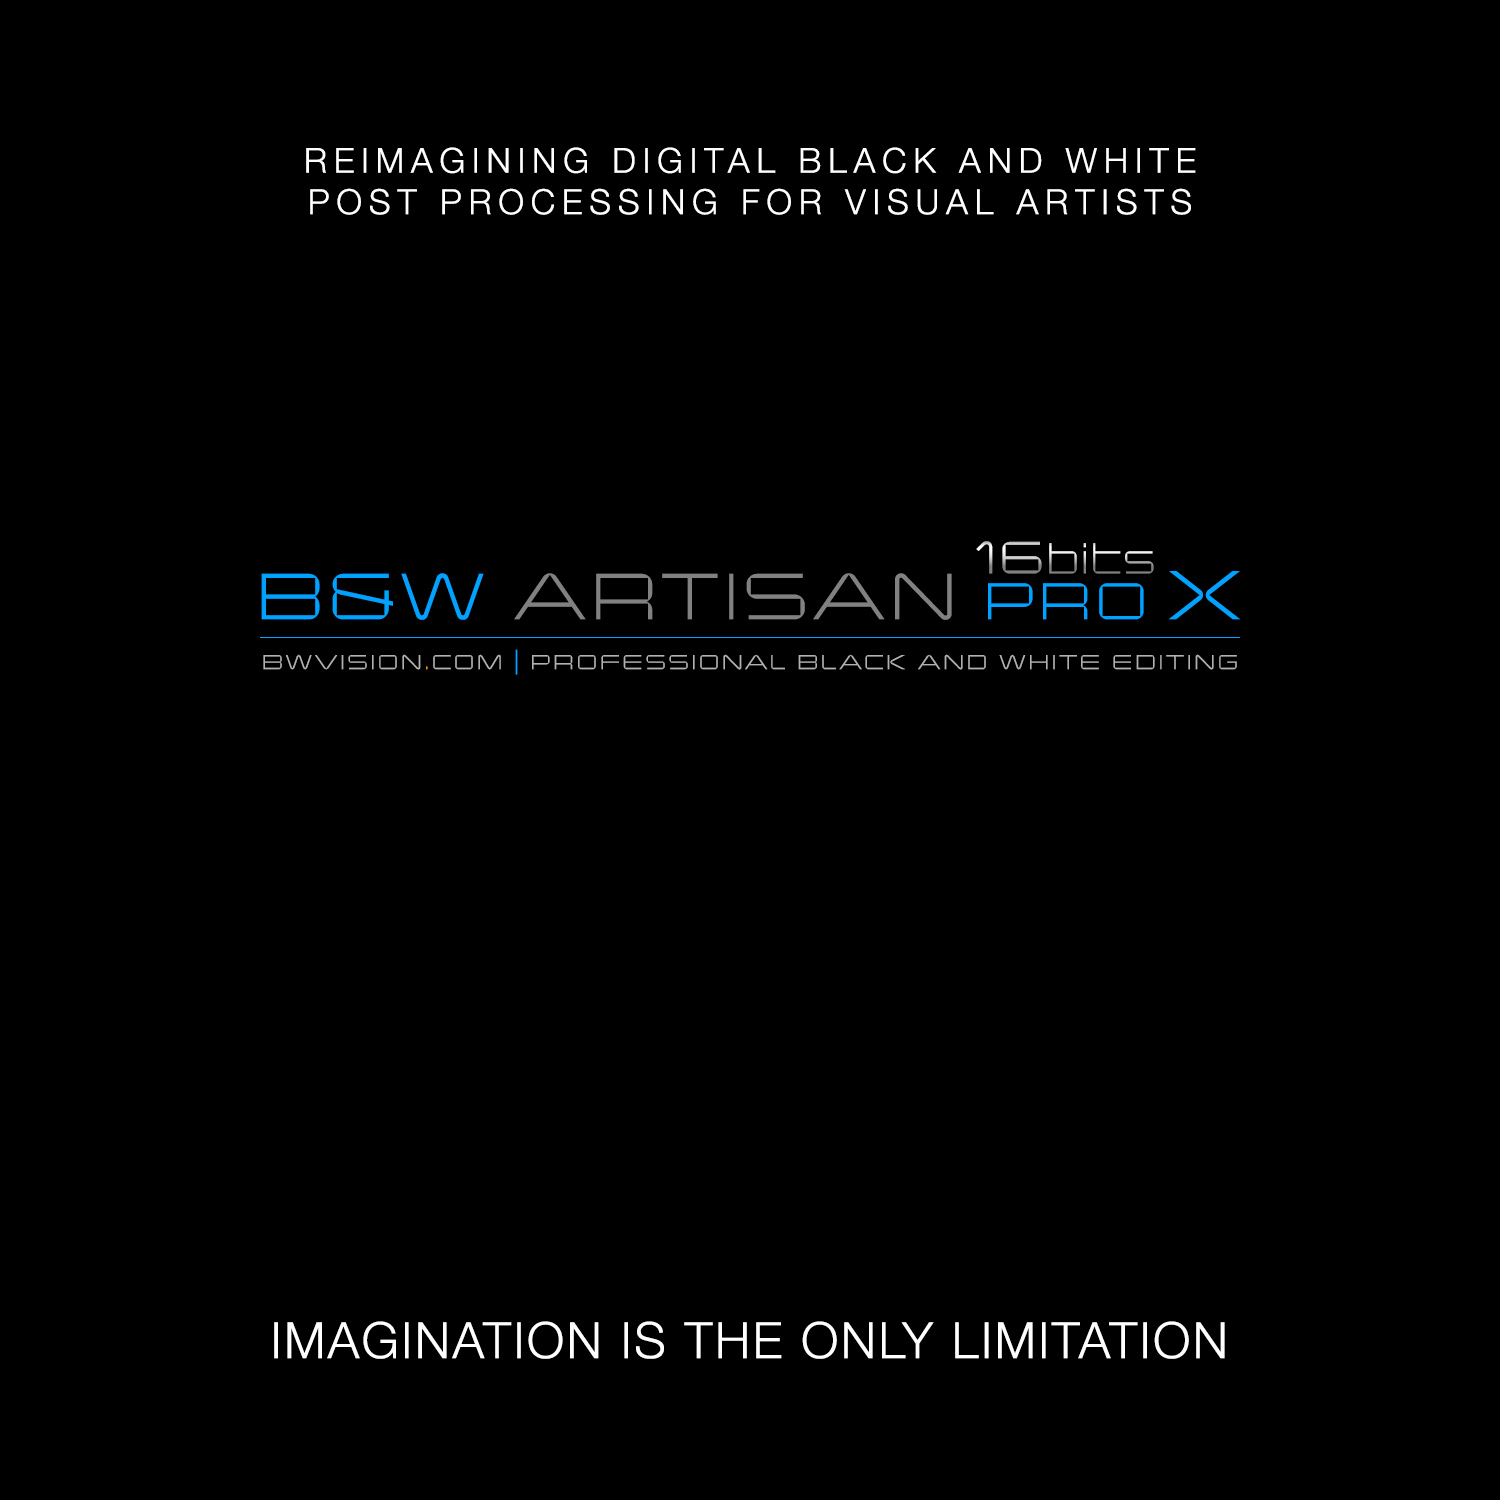 B&W Artisan Pro Panel for Photoshop Professional Black and White Editing Software